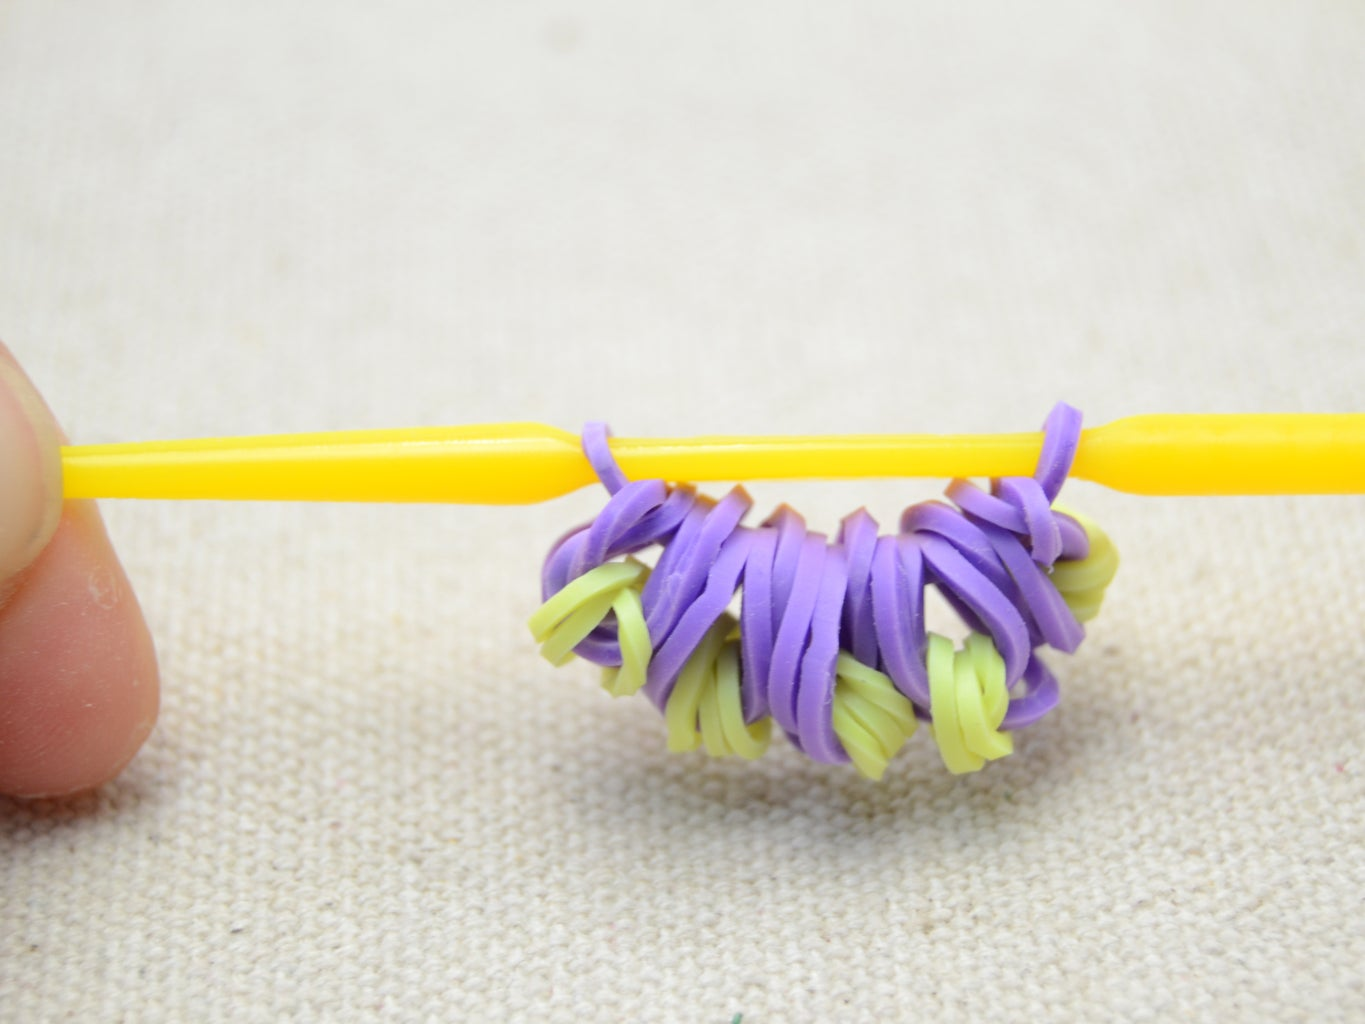 Slip the Five Petals to a Purple Rubber  and Thread Two Ends of the Purple Band to Hook;